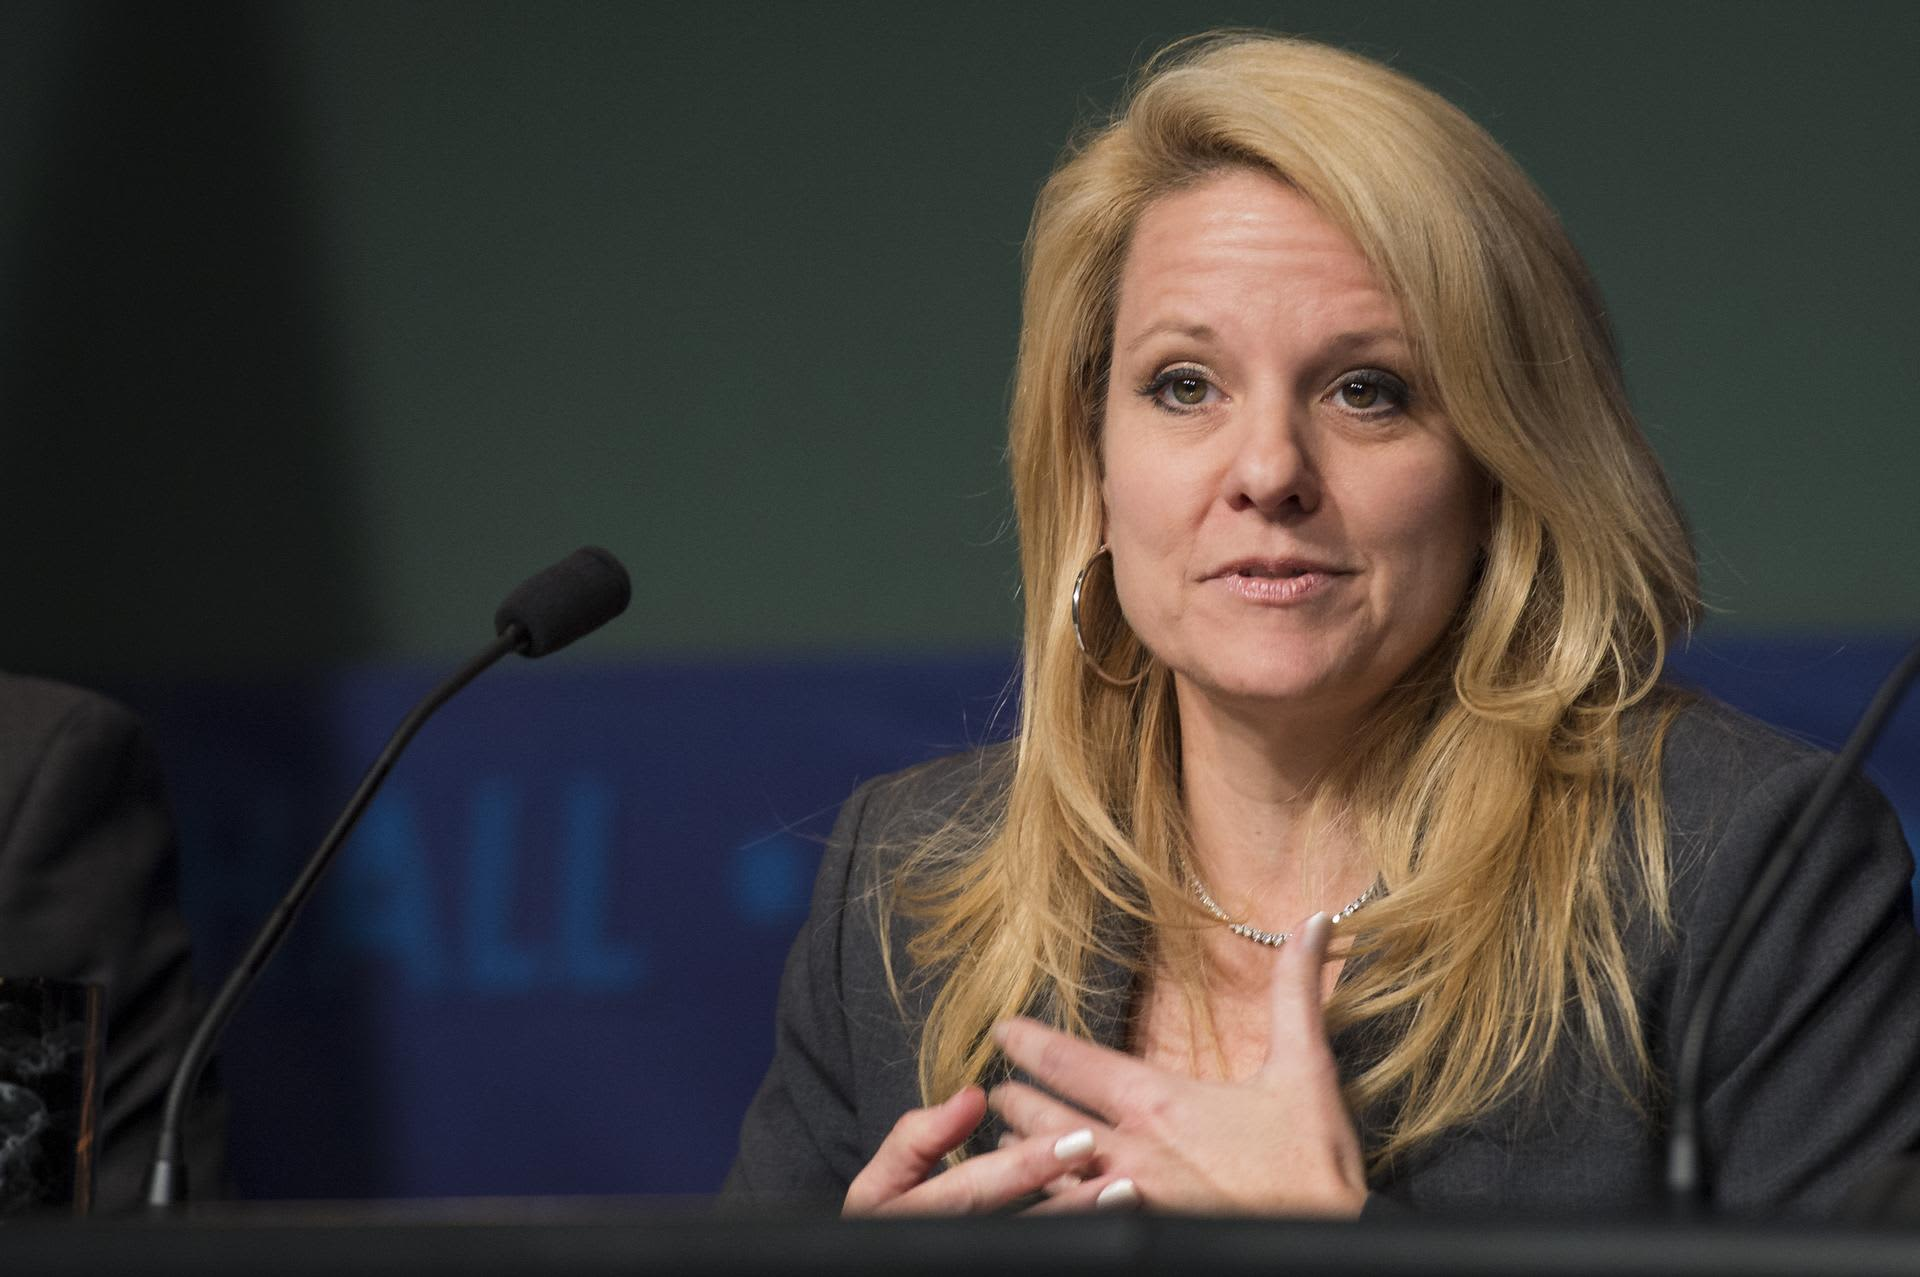 Read SpaceX president Gwynne Shotwell's speech to 2021 graduates, urging US educational reforms